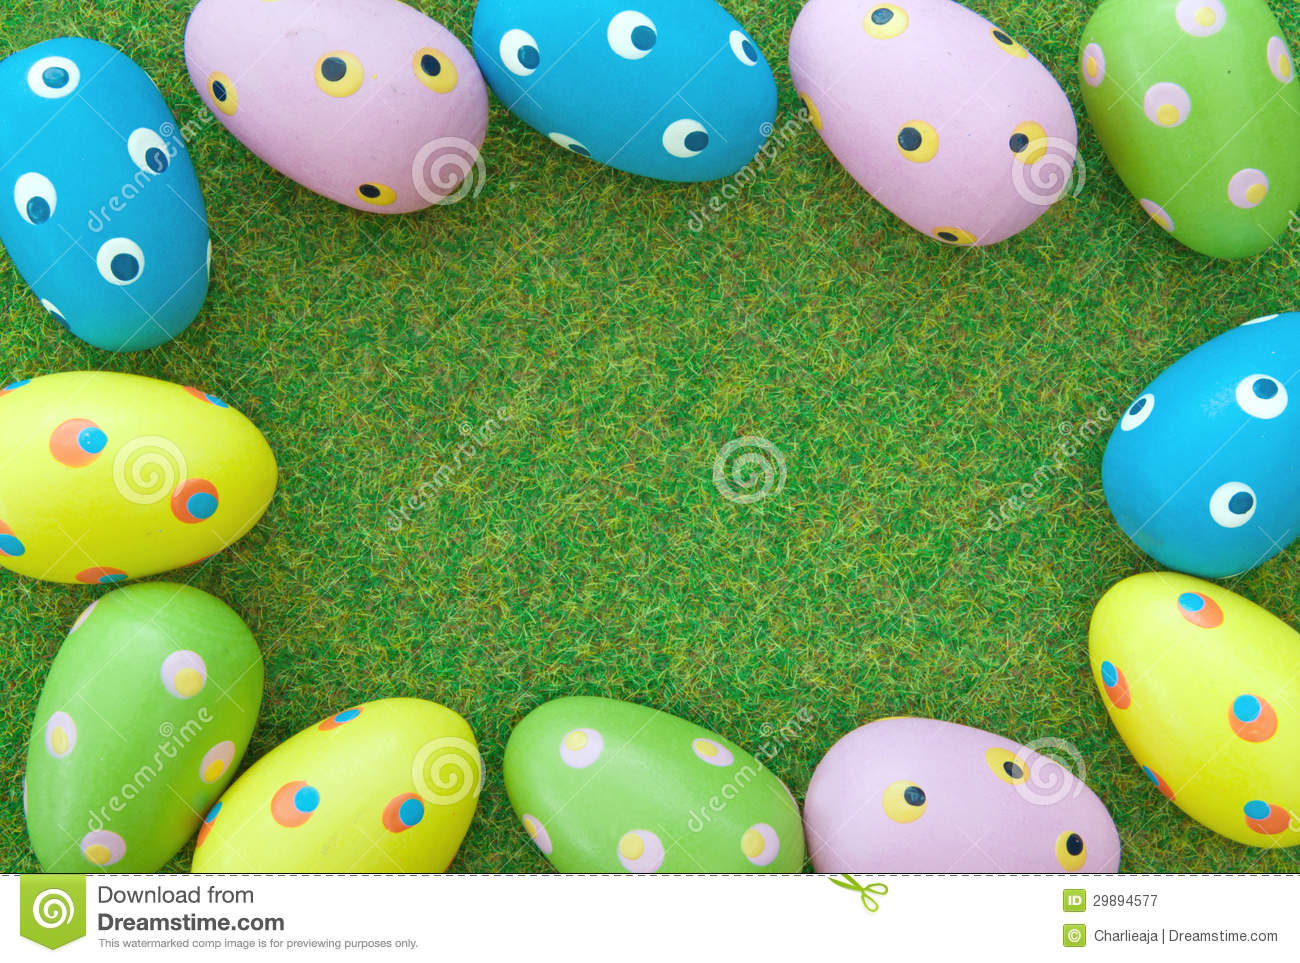 Easter Eggs Royalty Free Stock Photography - Image: 29894577